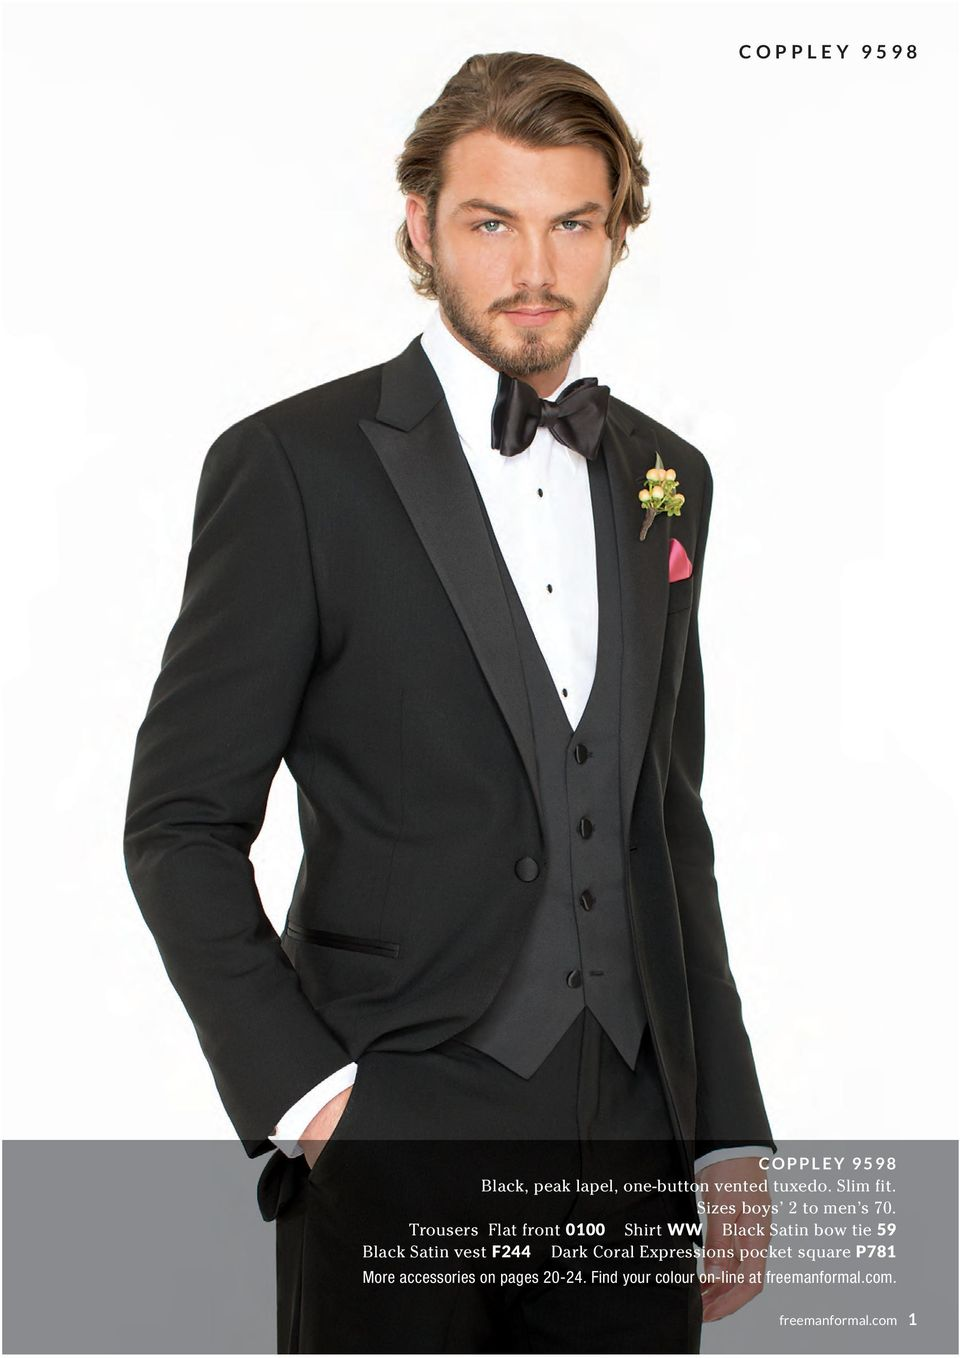 Trousers Flat front 0100 Shirt WW Black Satin bow tie 59 Black